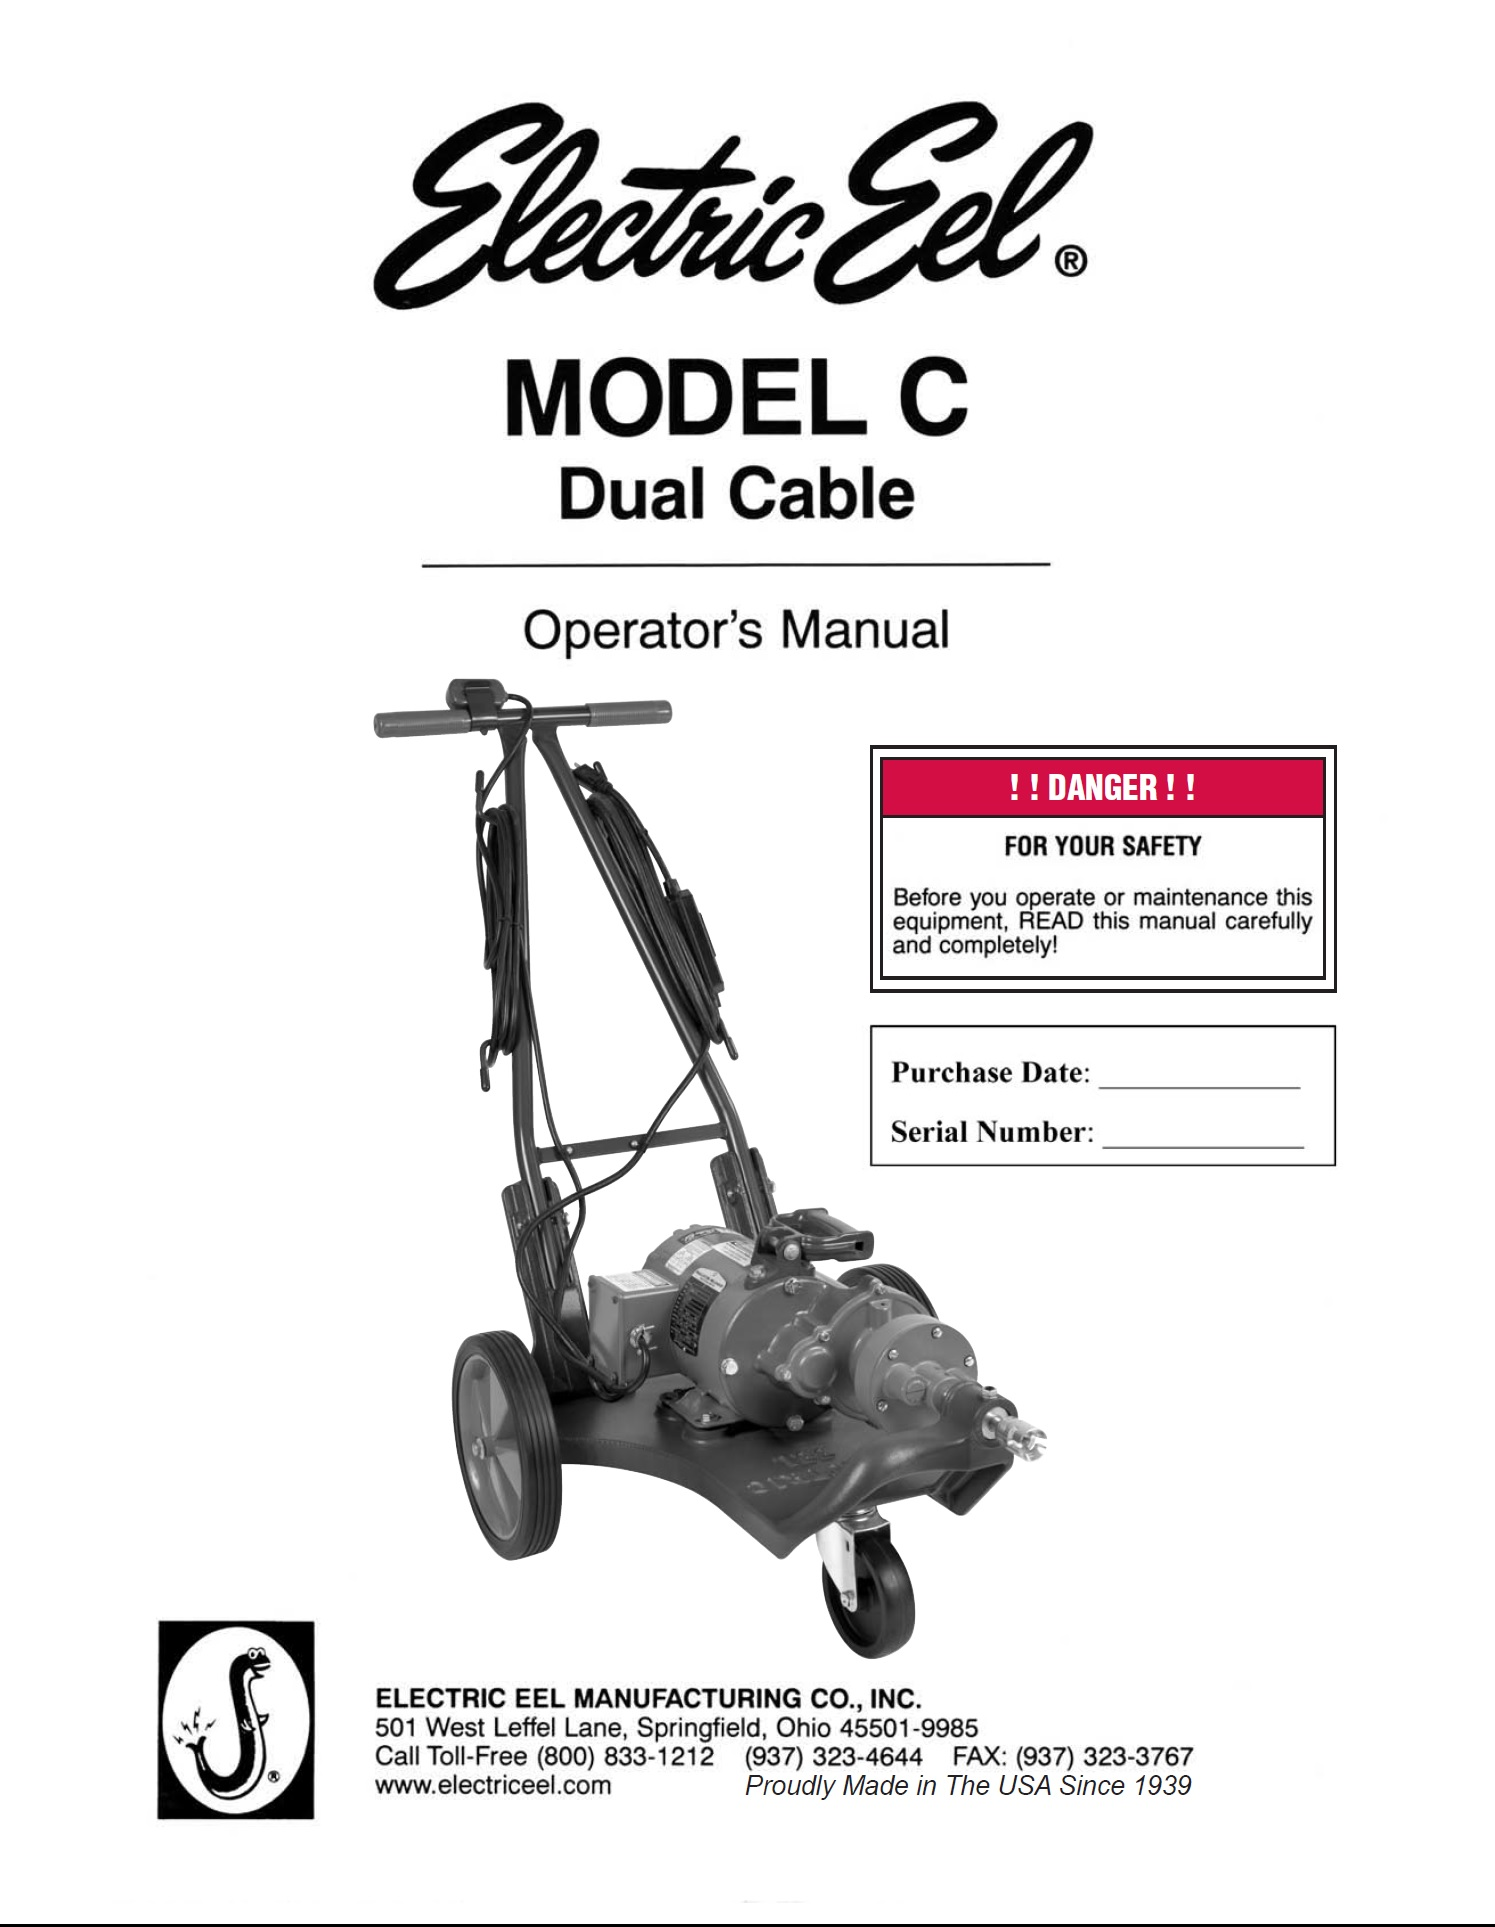 model-c-operating-manual-page-1.jpg